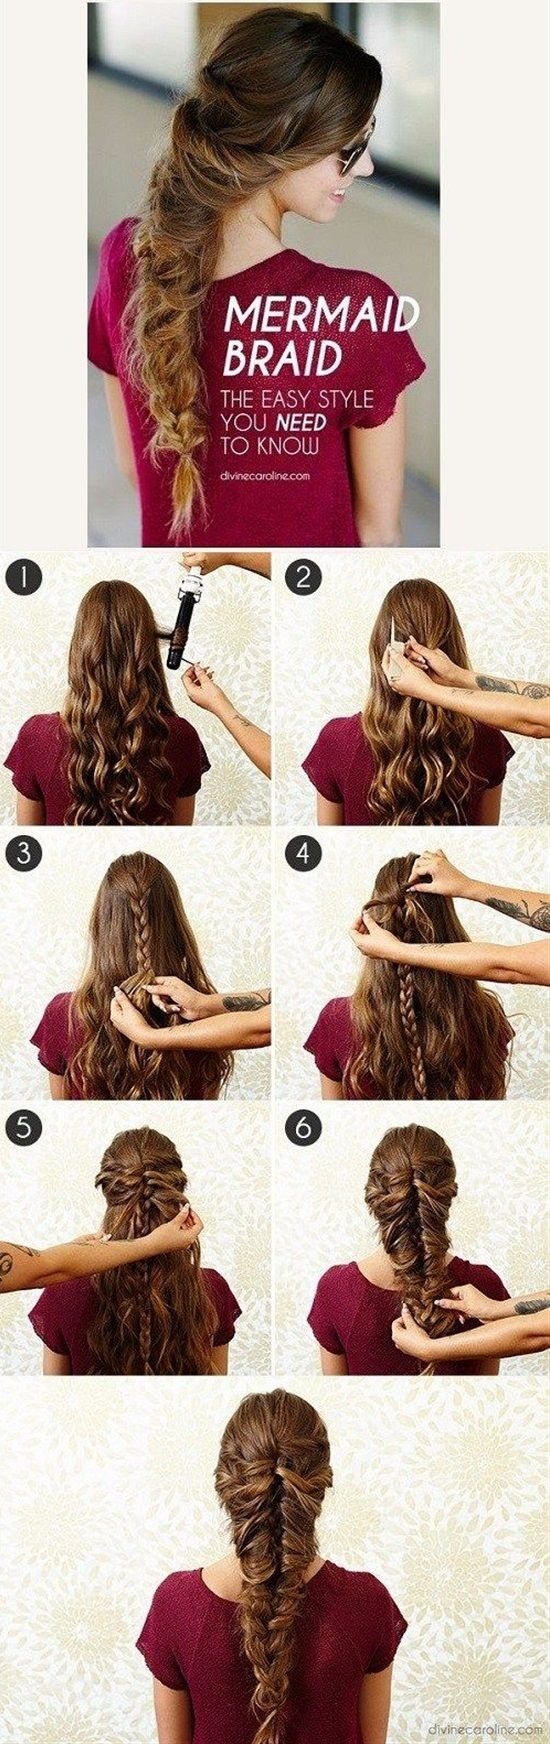 14 Bold Unique Hairstyle Tutorials You Can Do At Home Pretty Braided Hairstyles Long Hair Styles Braided Hairstyles Tutorials